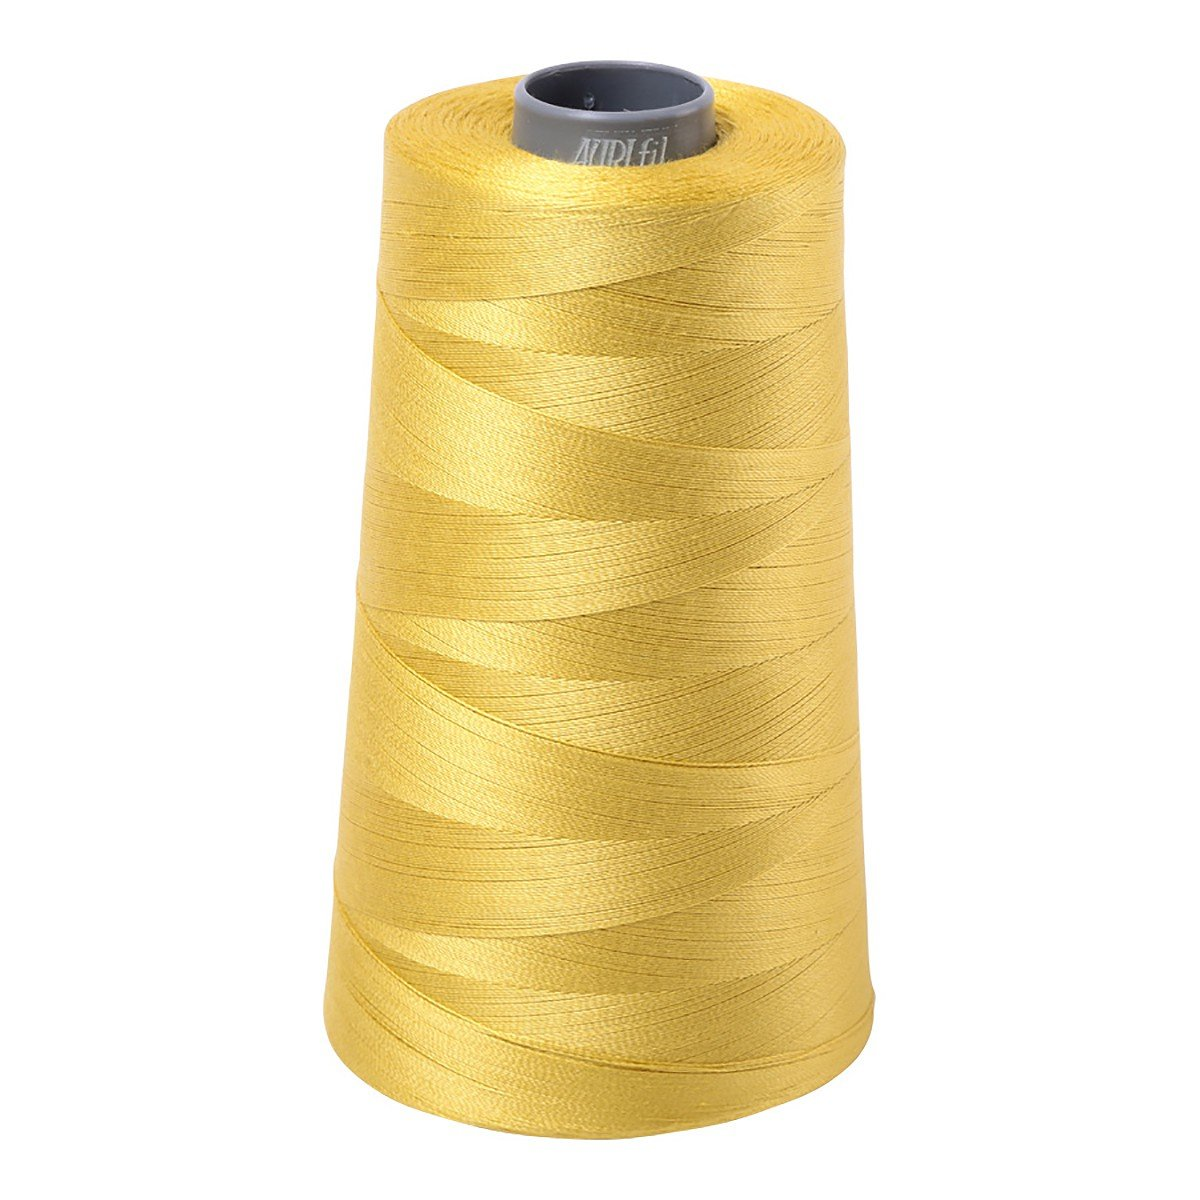 Mako (Cotton) Embroidery Thread 28wt 3609yds Gold Yellow